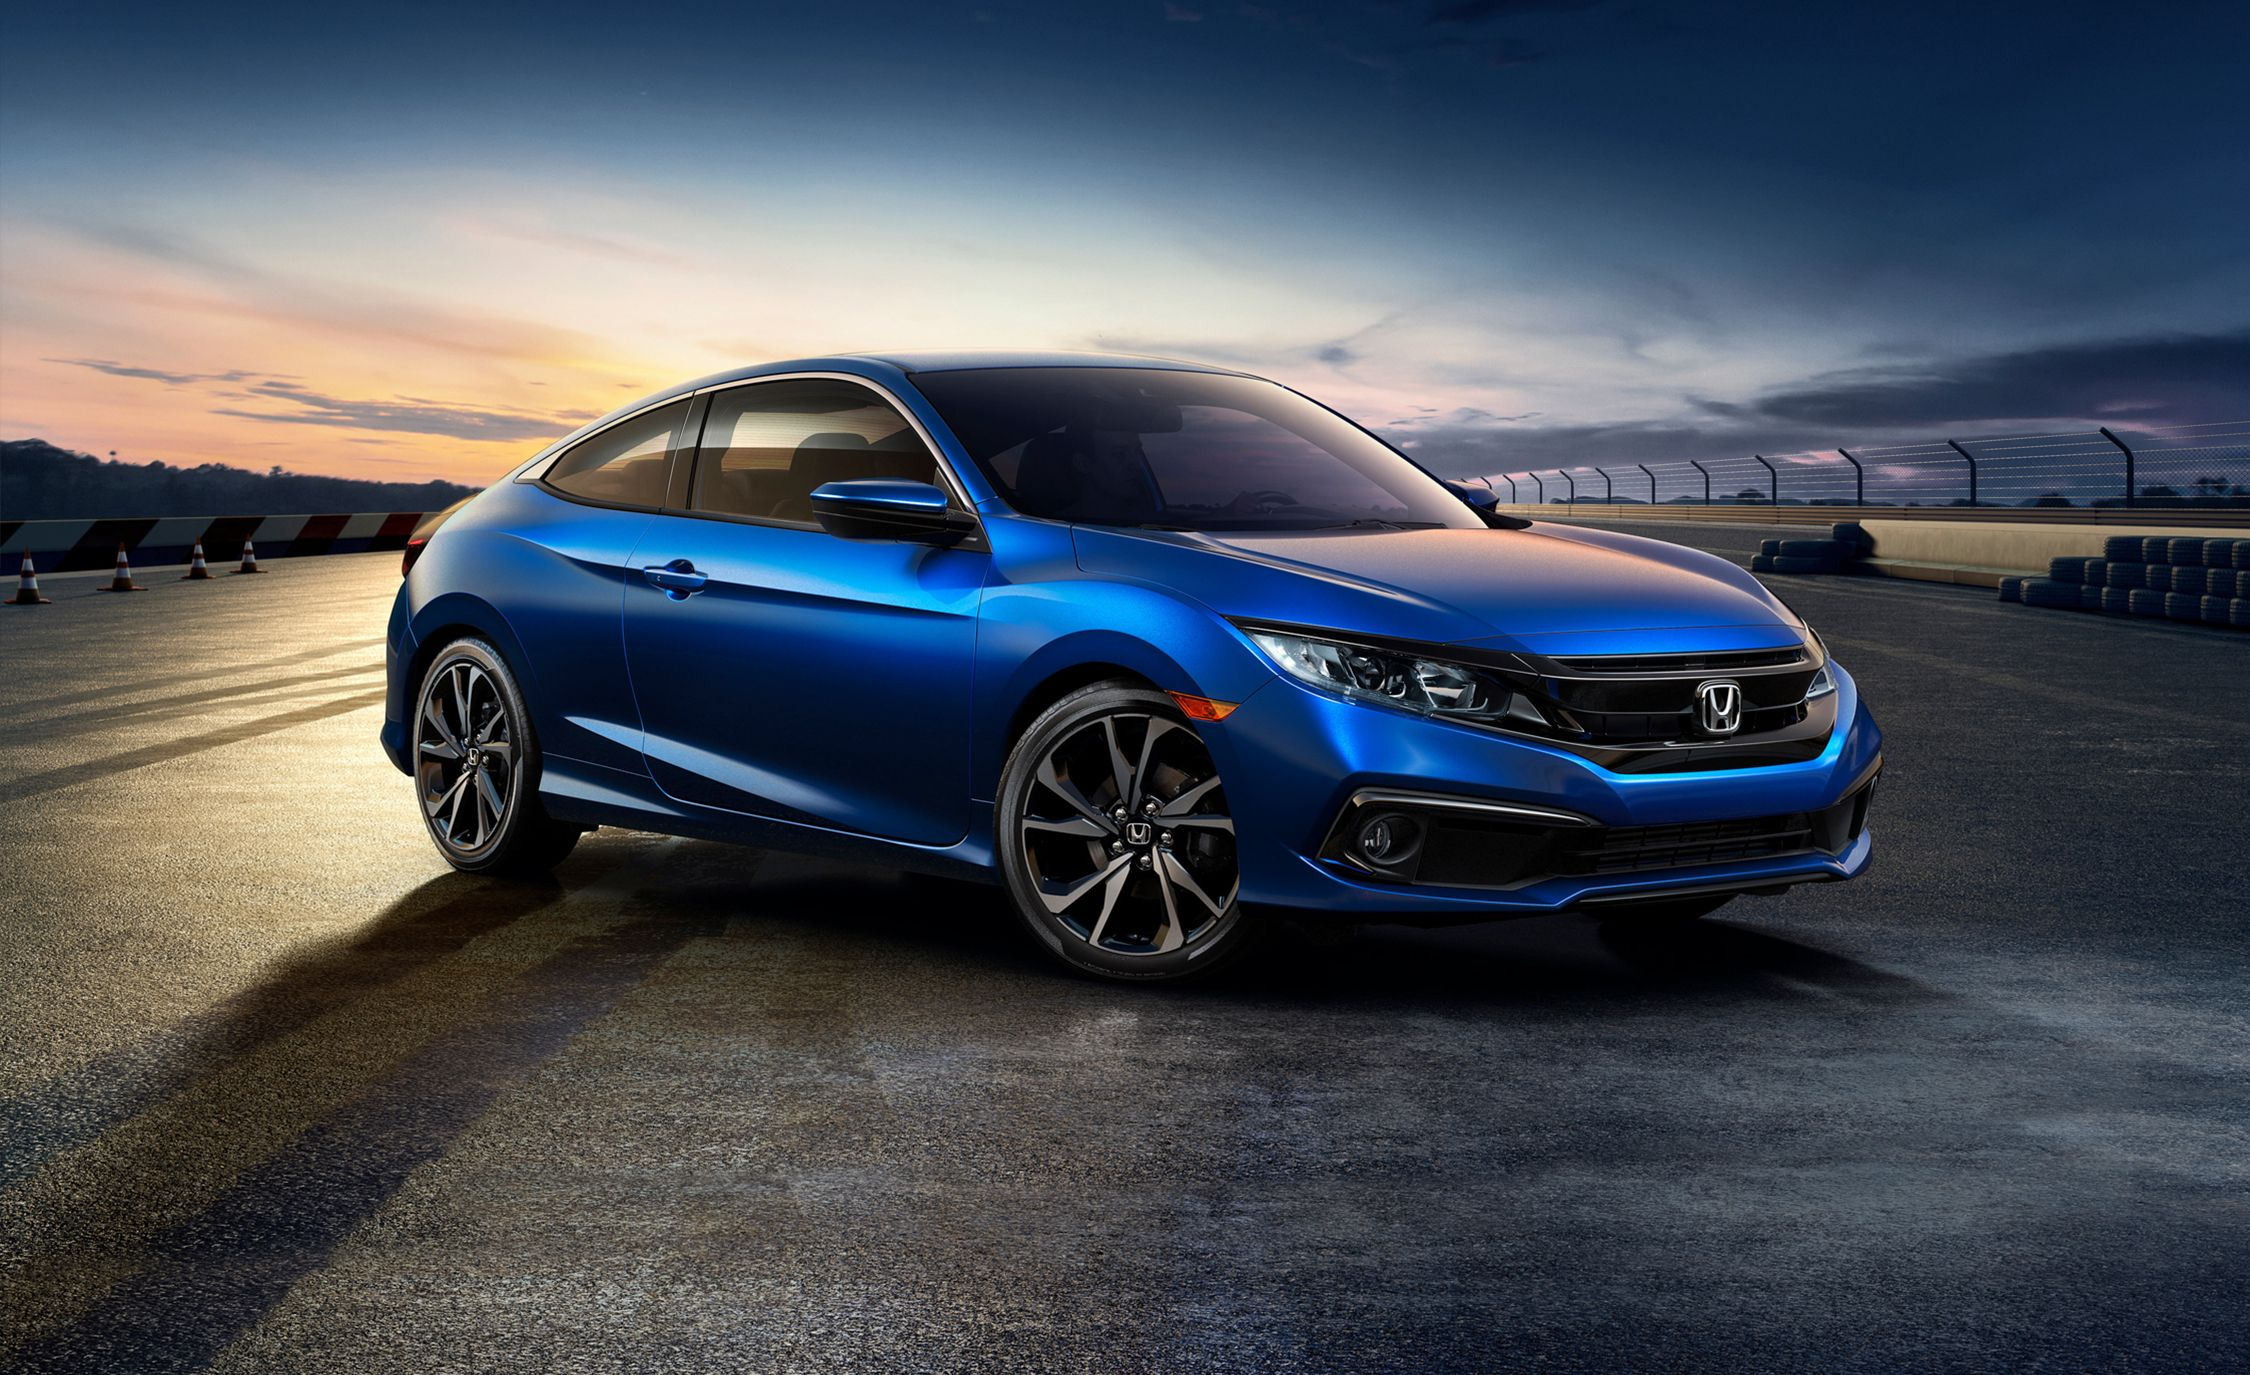 2019 Honda Civic Update Refreshed Looks And New Trim Level